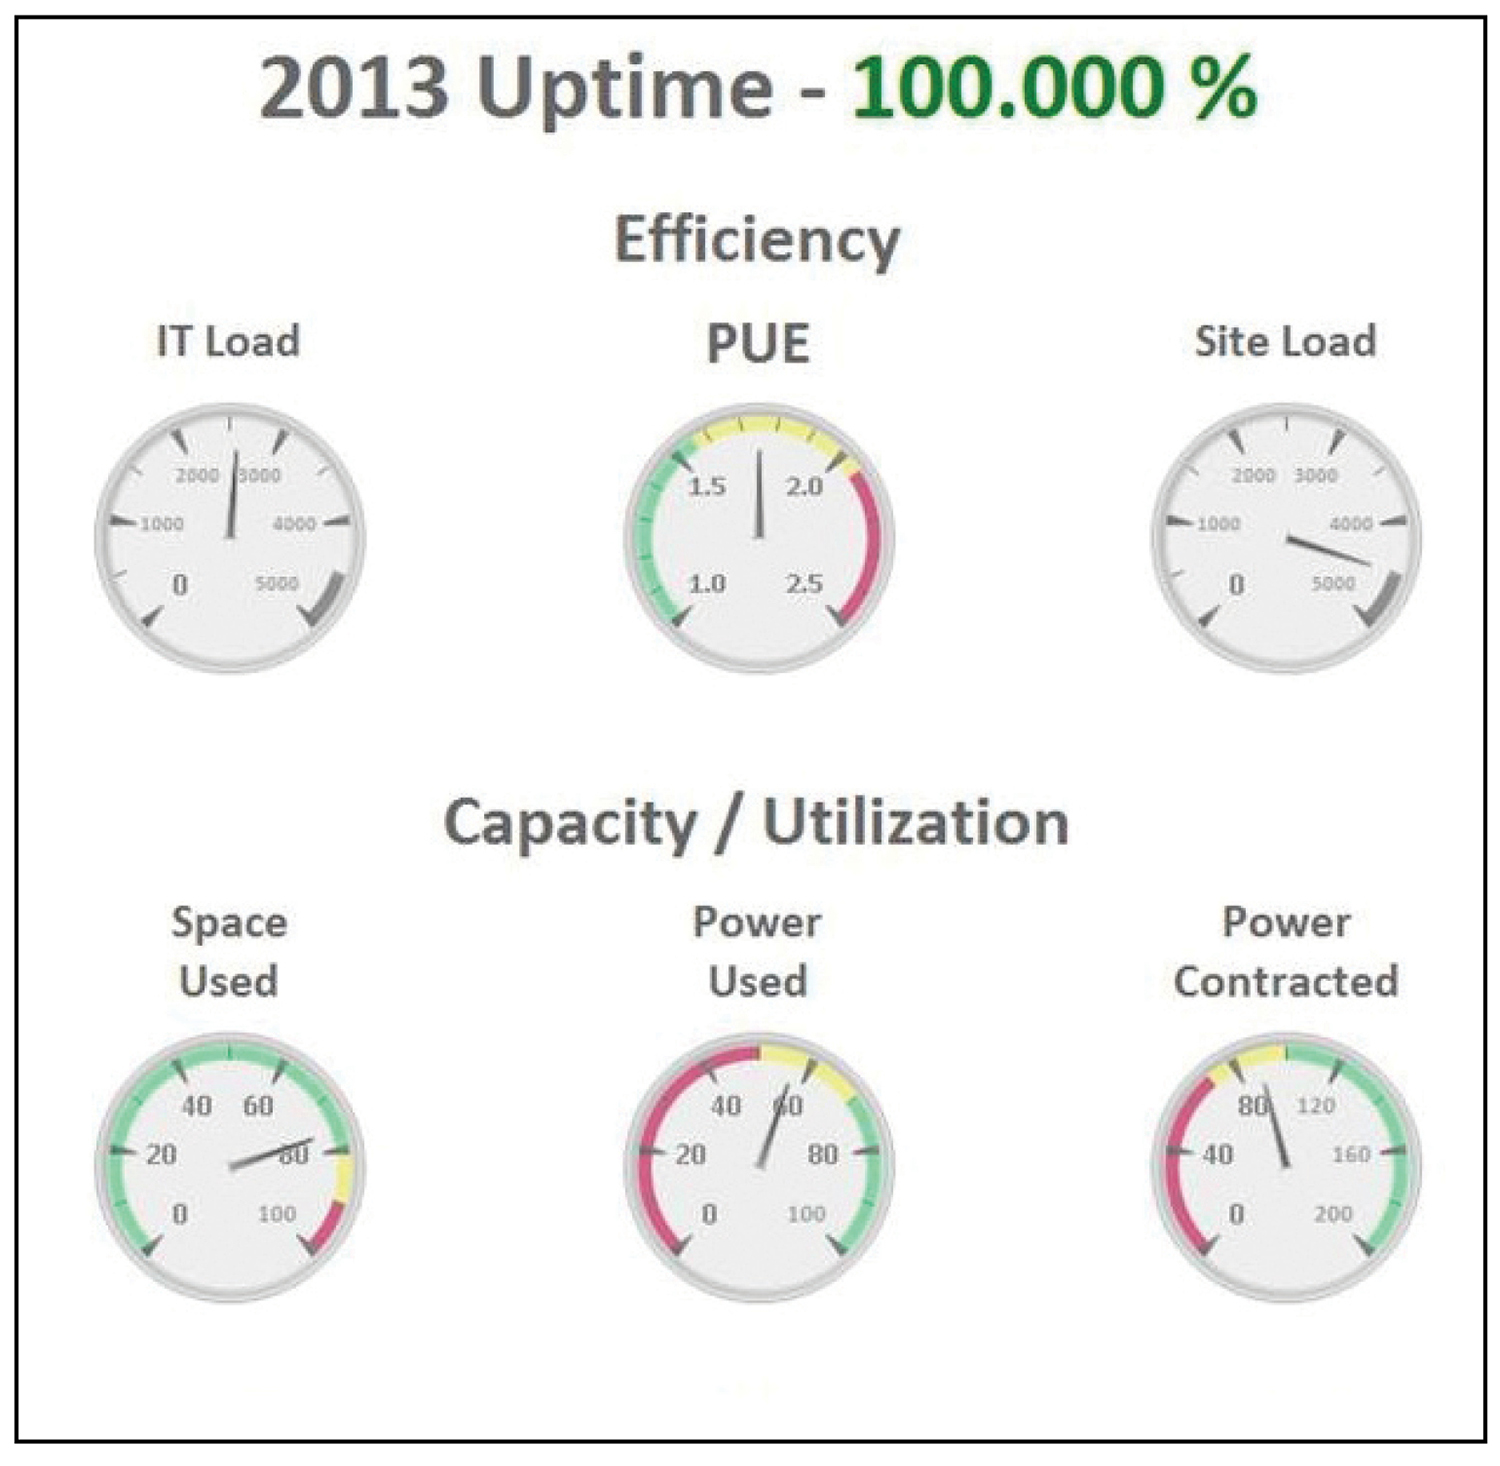 Figure 3. CenturyLink developed a dynamic dashboard that tracks and trends important data: site capacity, PUE, available raised floor space, operational costs, abnormal Incidents, uptime metrics, and much more to provide a central source of up-to-date information for all levels of the organization.